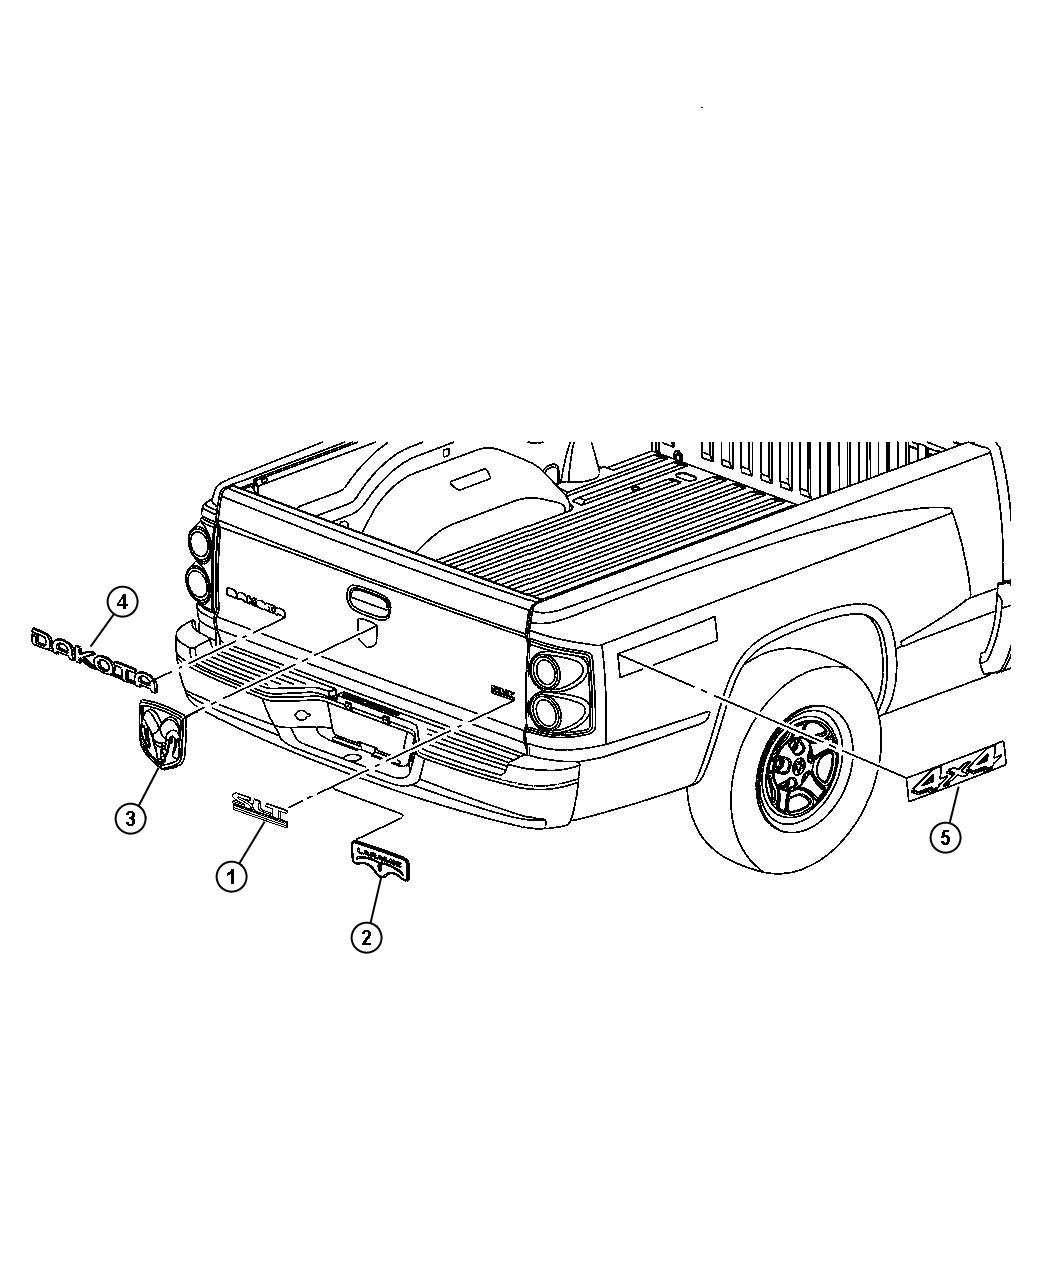 Dodge Dakota Factory Parts Pictures To Pin